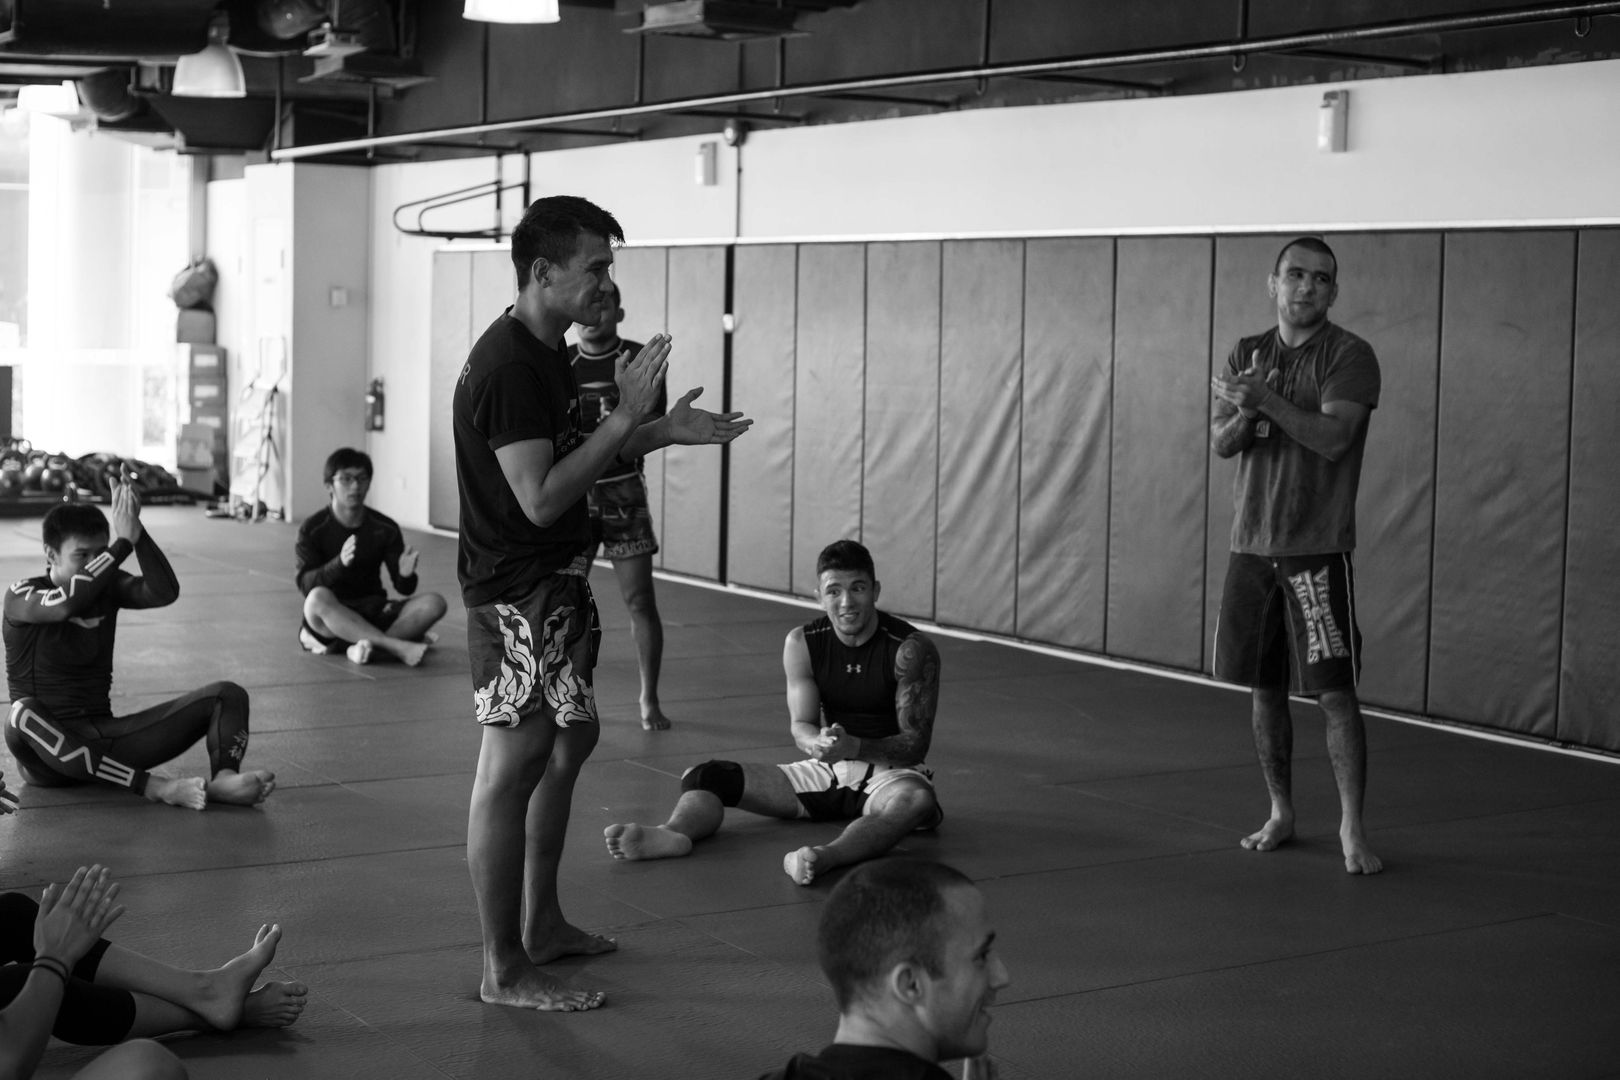 The Evolve MMA Fighters Program is the only program in Asia designed for professional fighters by World Champions in Muay Thai, Brazilian Jiu-Jitsu, Mixed Martial Arts, Boxing, Wrestling, No Gi Grappling, and more.